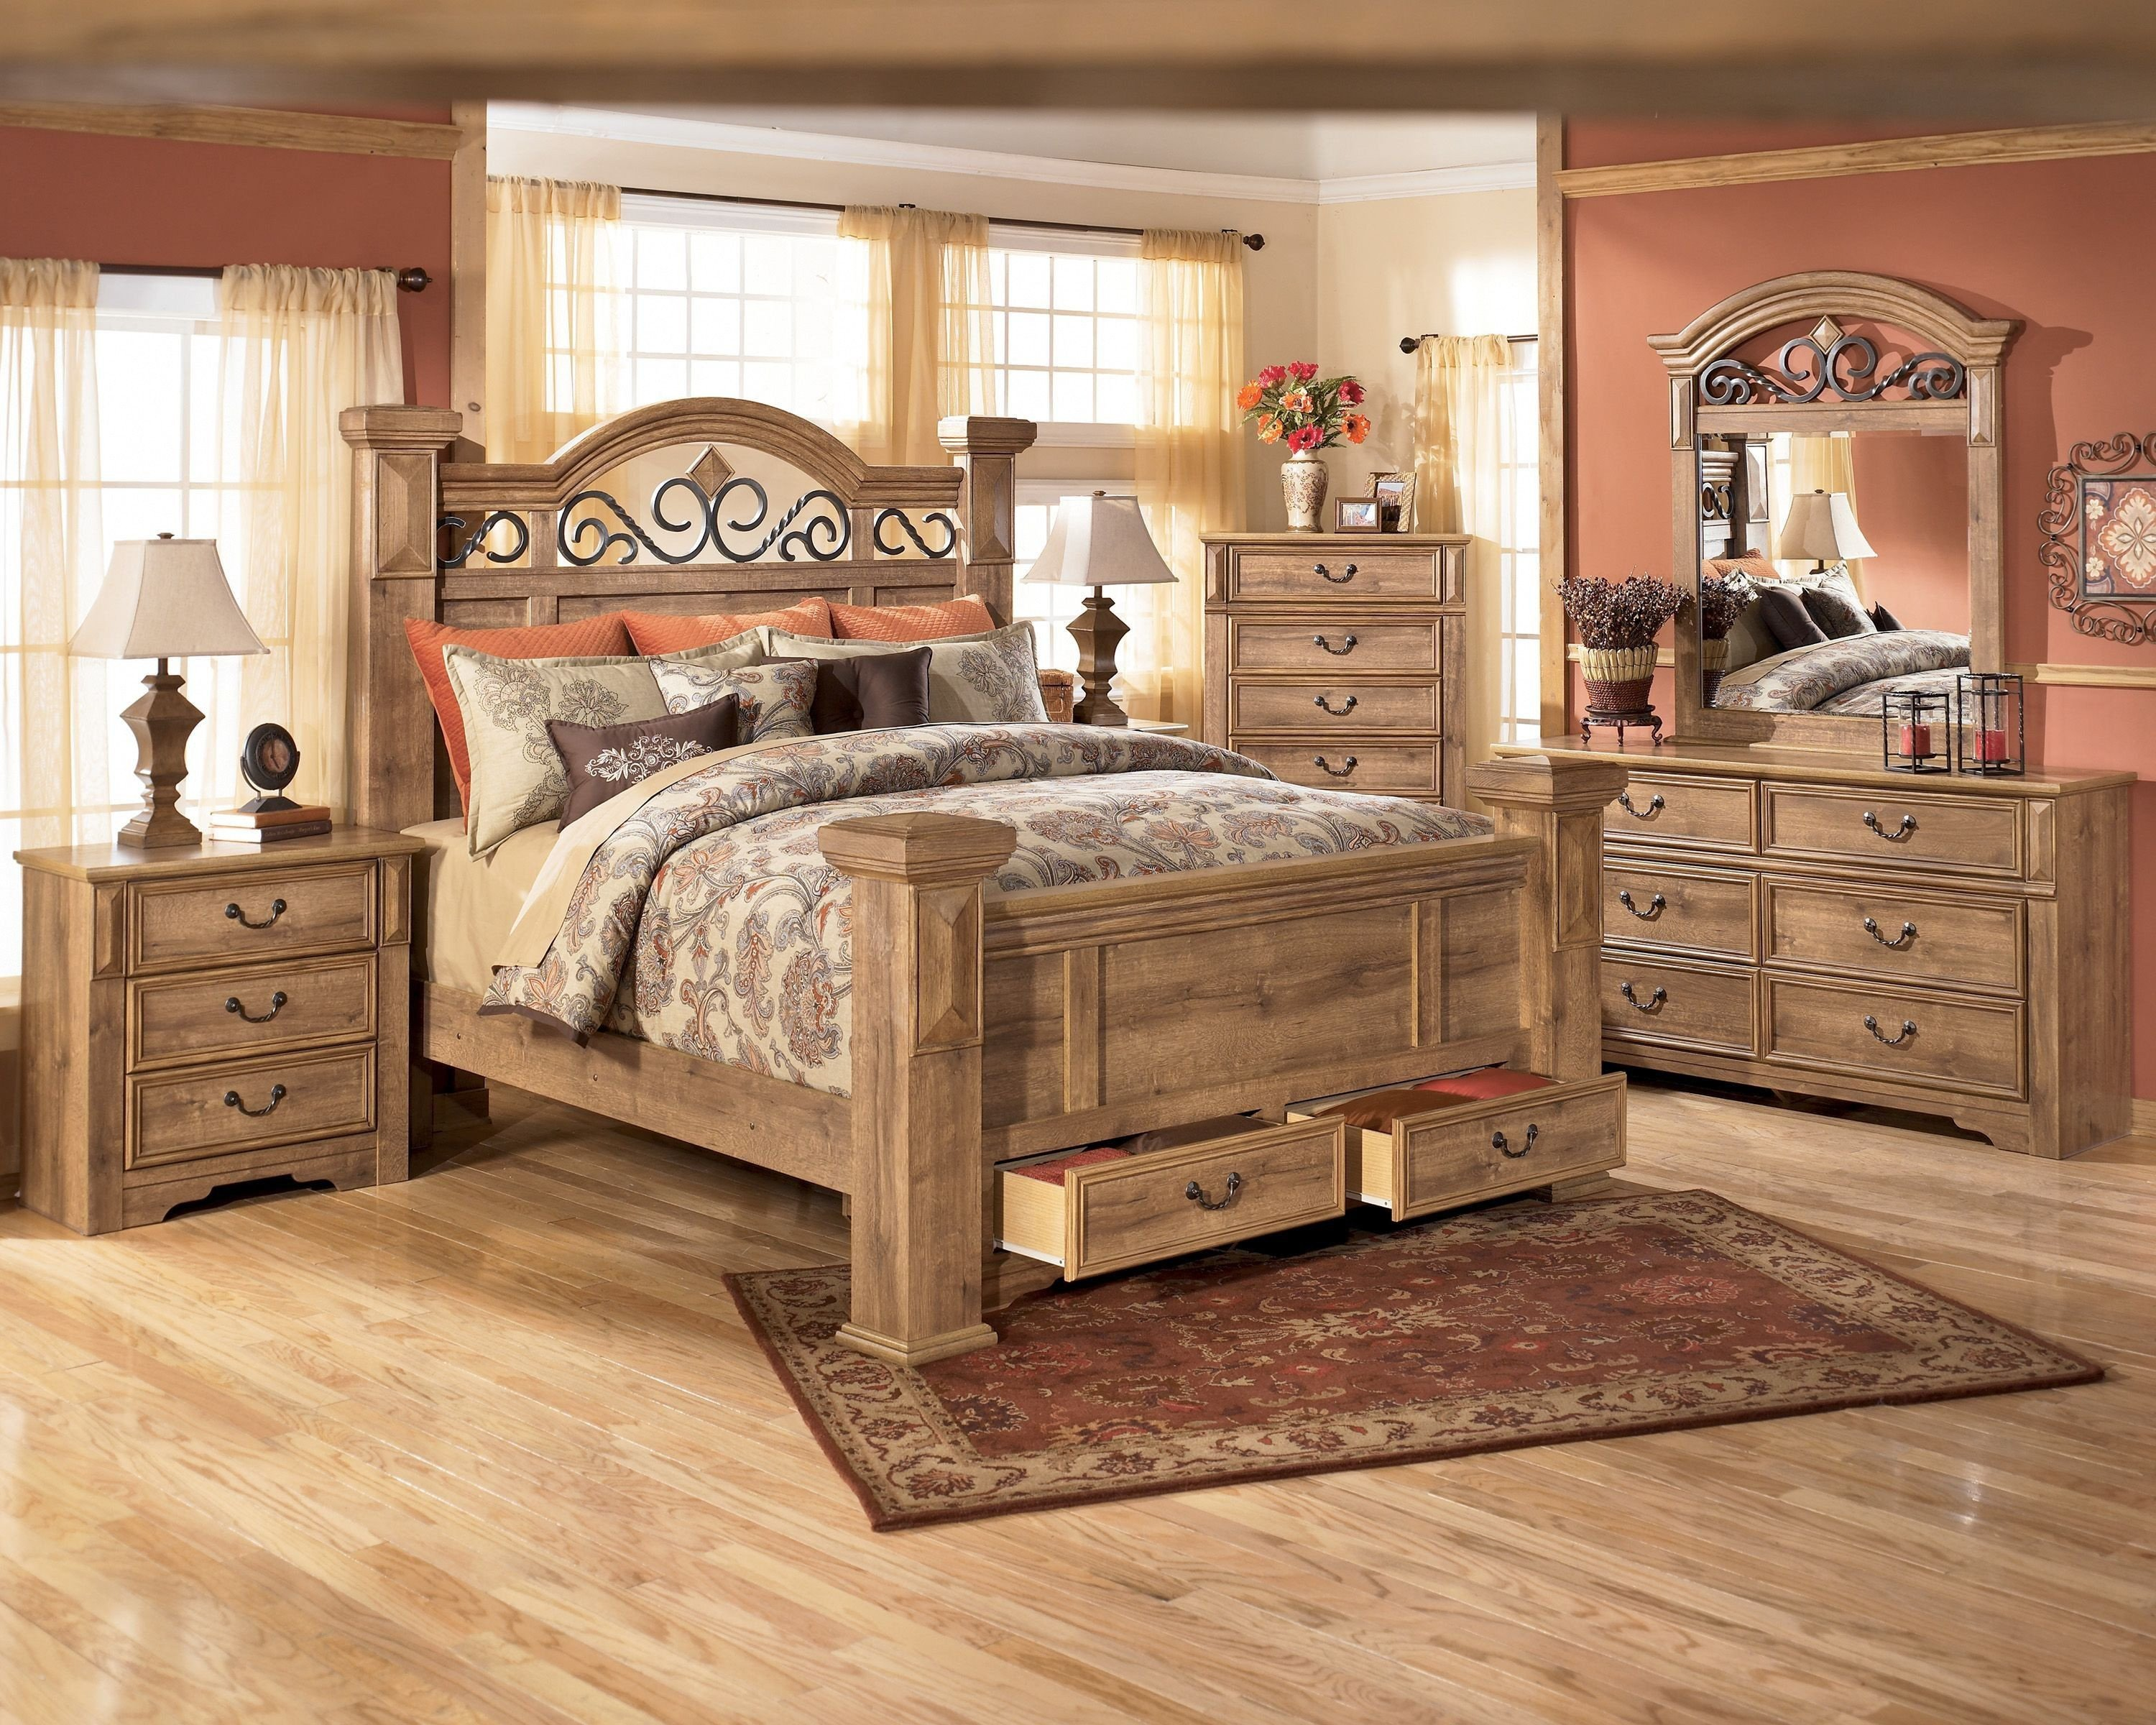 Queen Size Bedroom Suit Lovely Inspirational Rustic Bedroom Sets King Rustic Bedroom